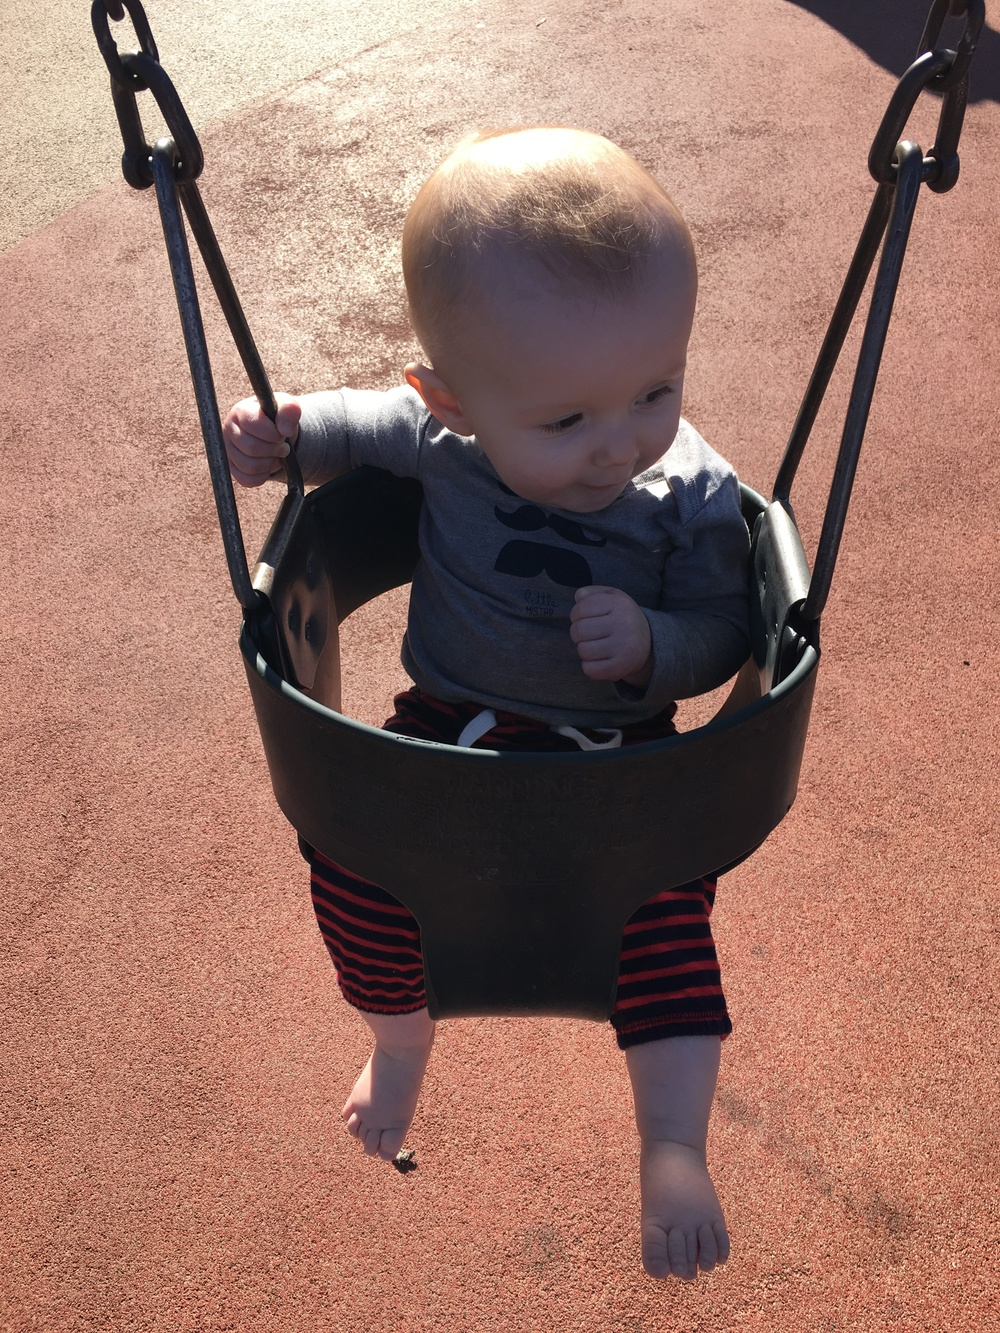 Baby First Time on Swing